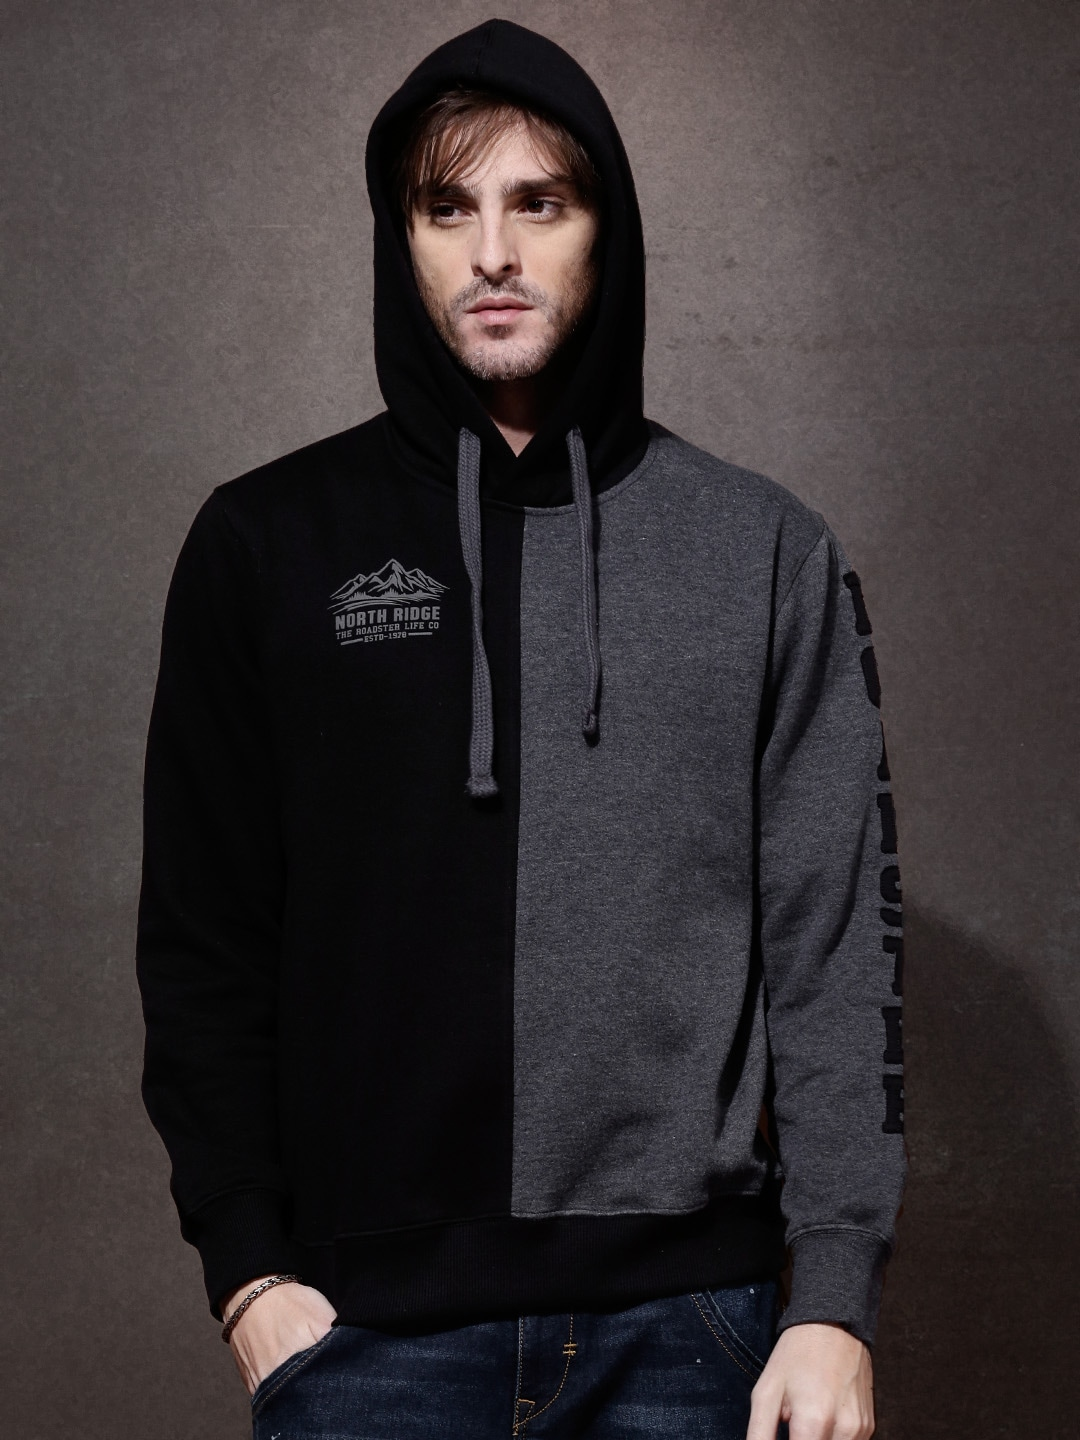 Roadster Sweatshirts - Buy Roadster Sweatshirts online in India 01d016adc13e